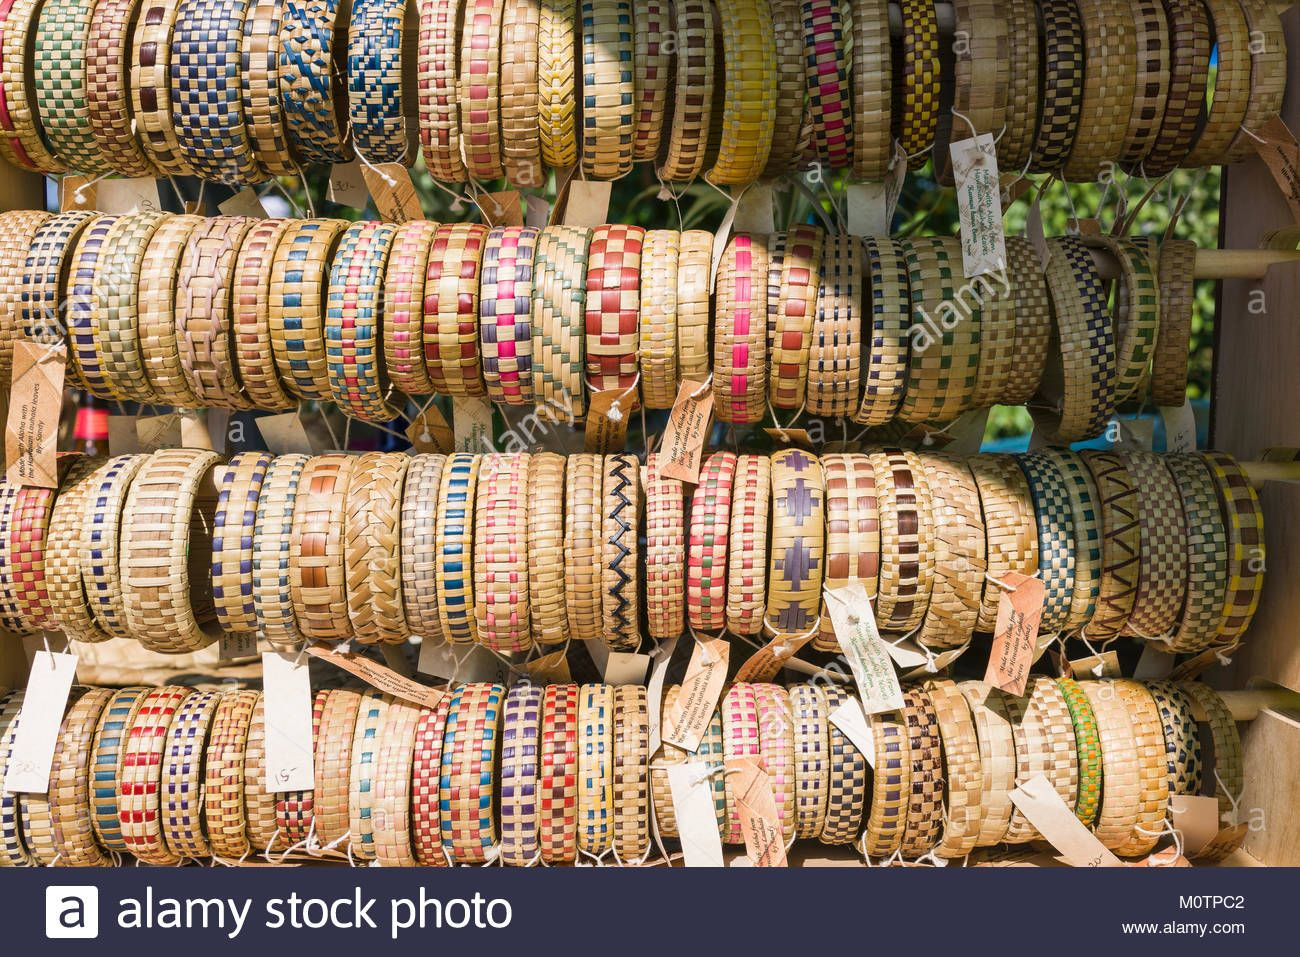 Download this stock image handmade lauhala bracelets for